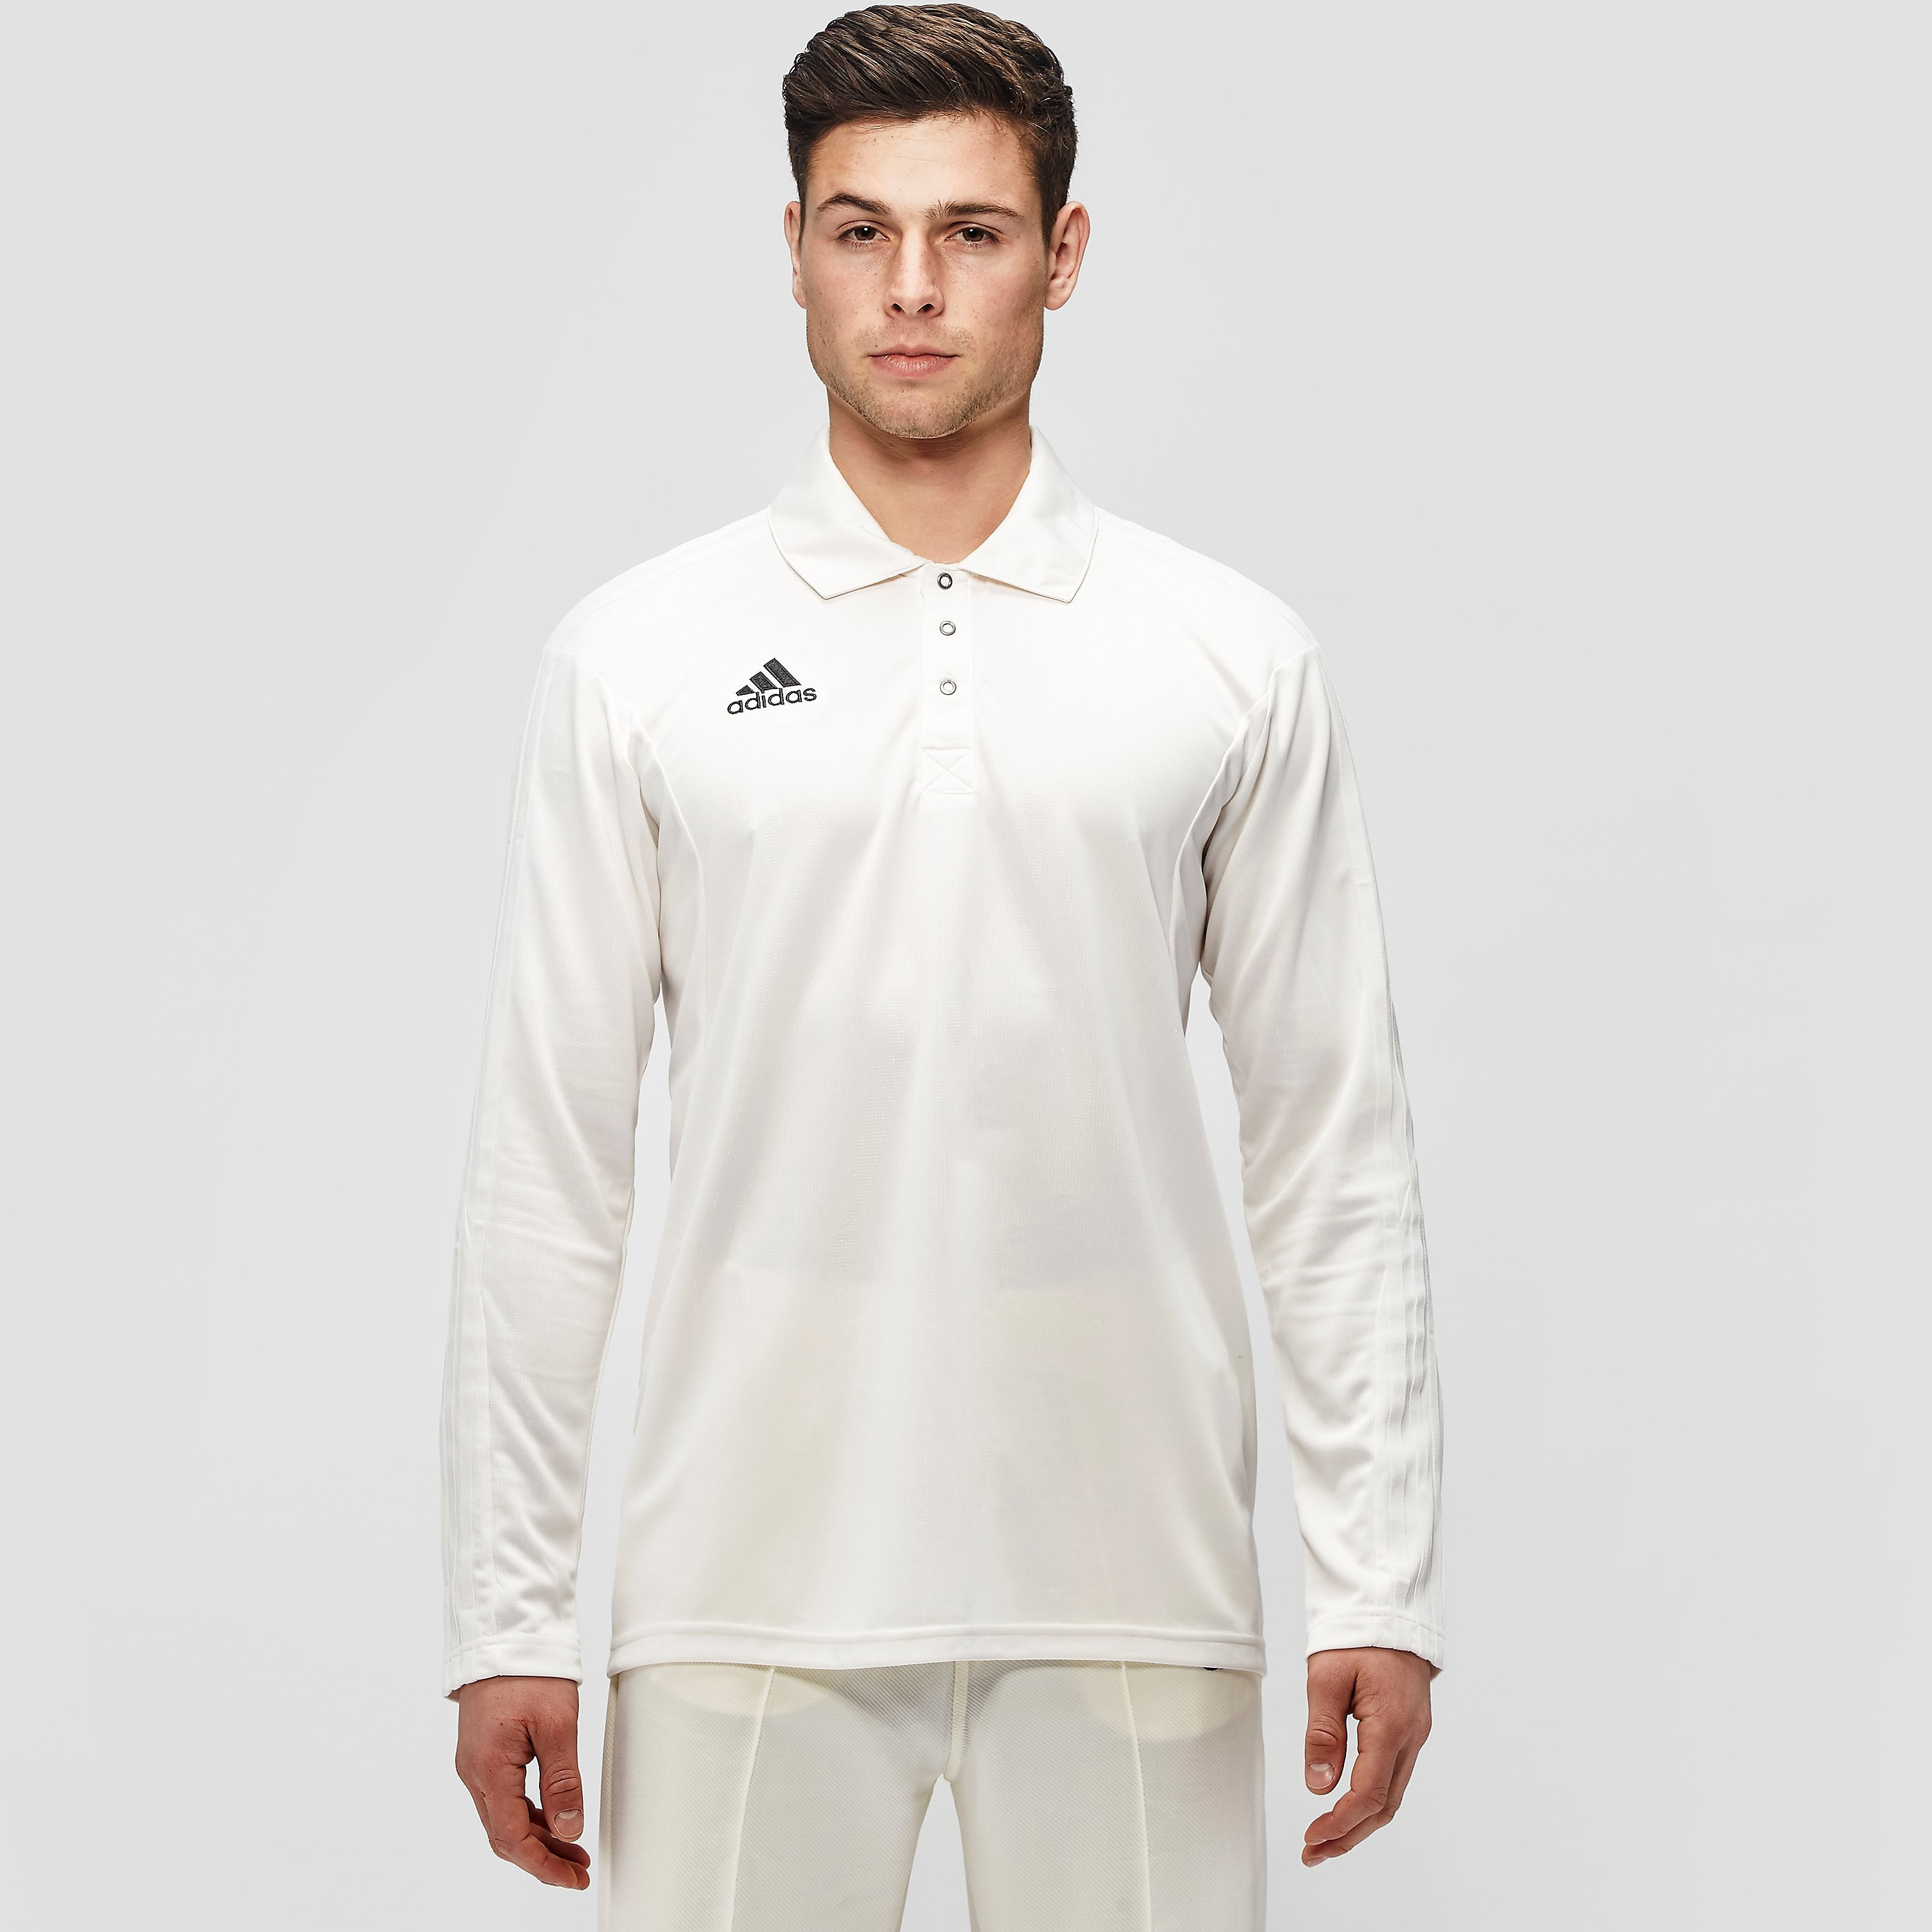 adidas Long Sleeve Adult Cricket Shirt